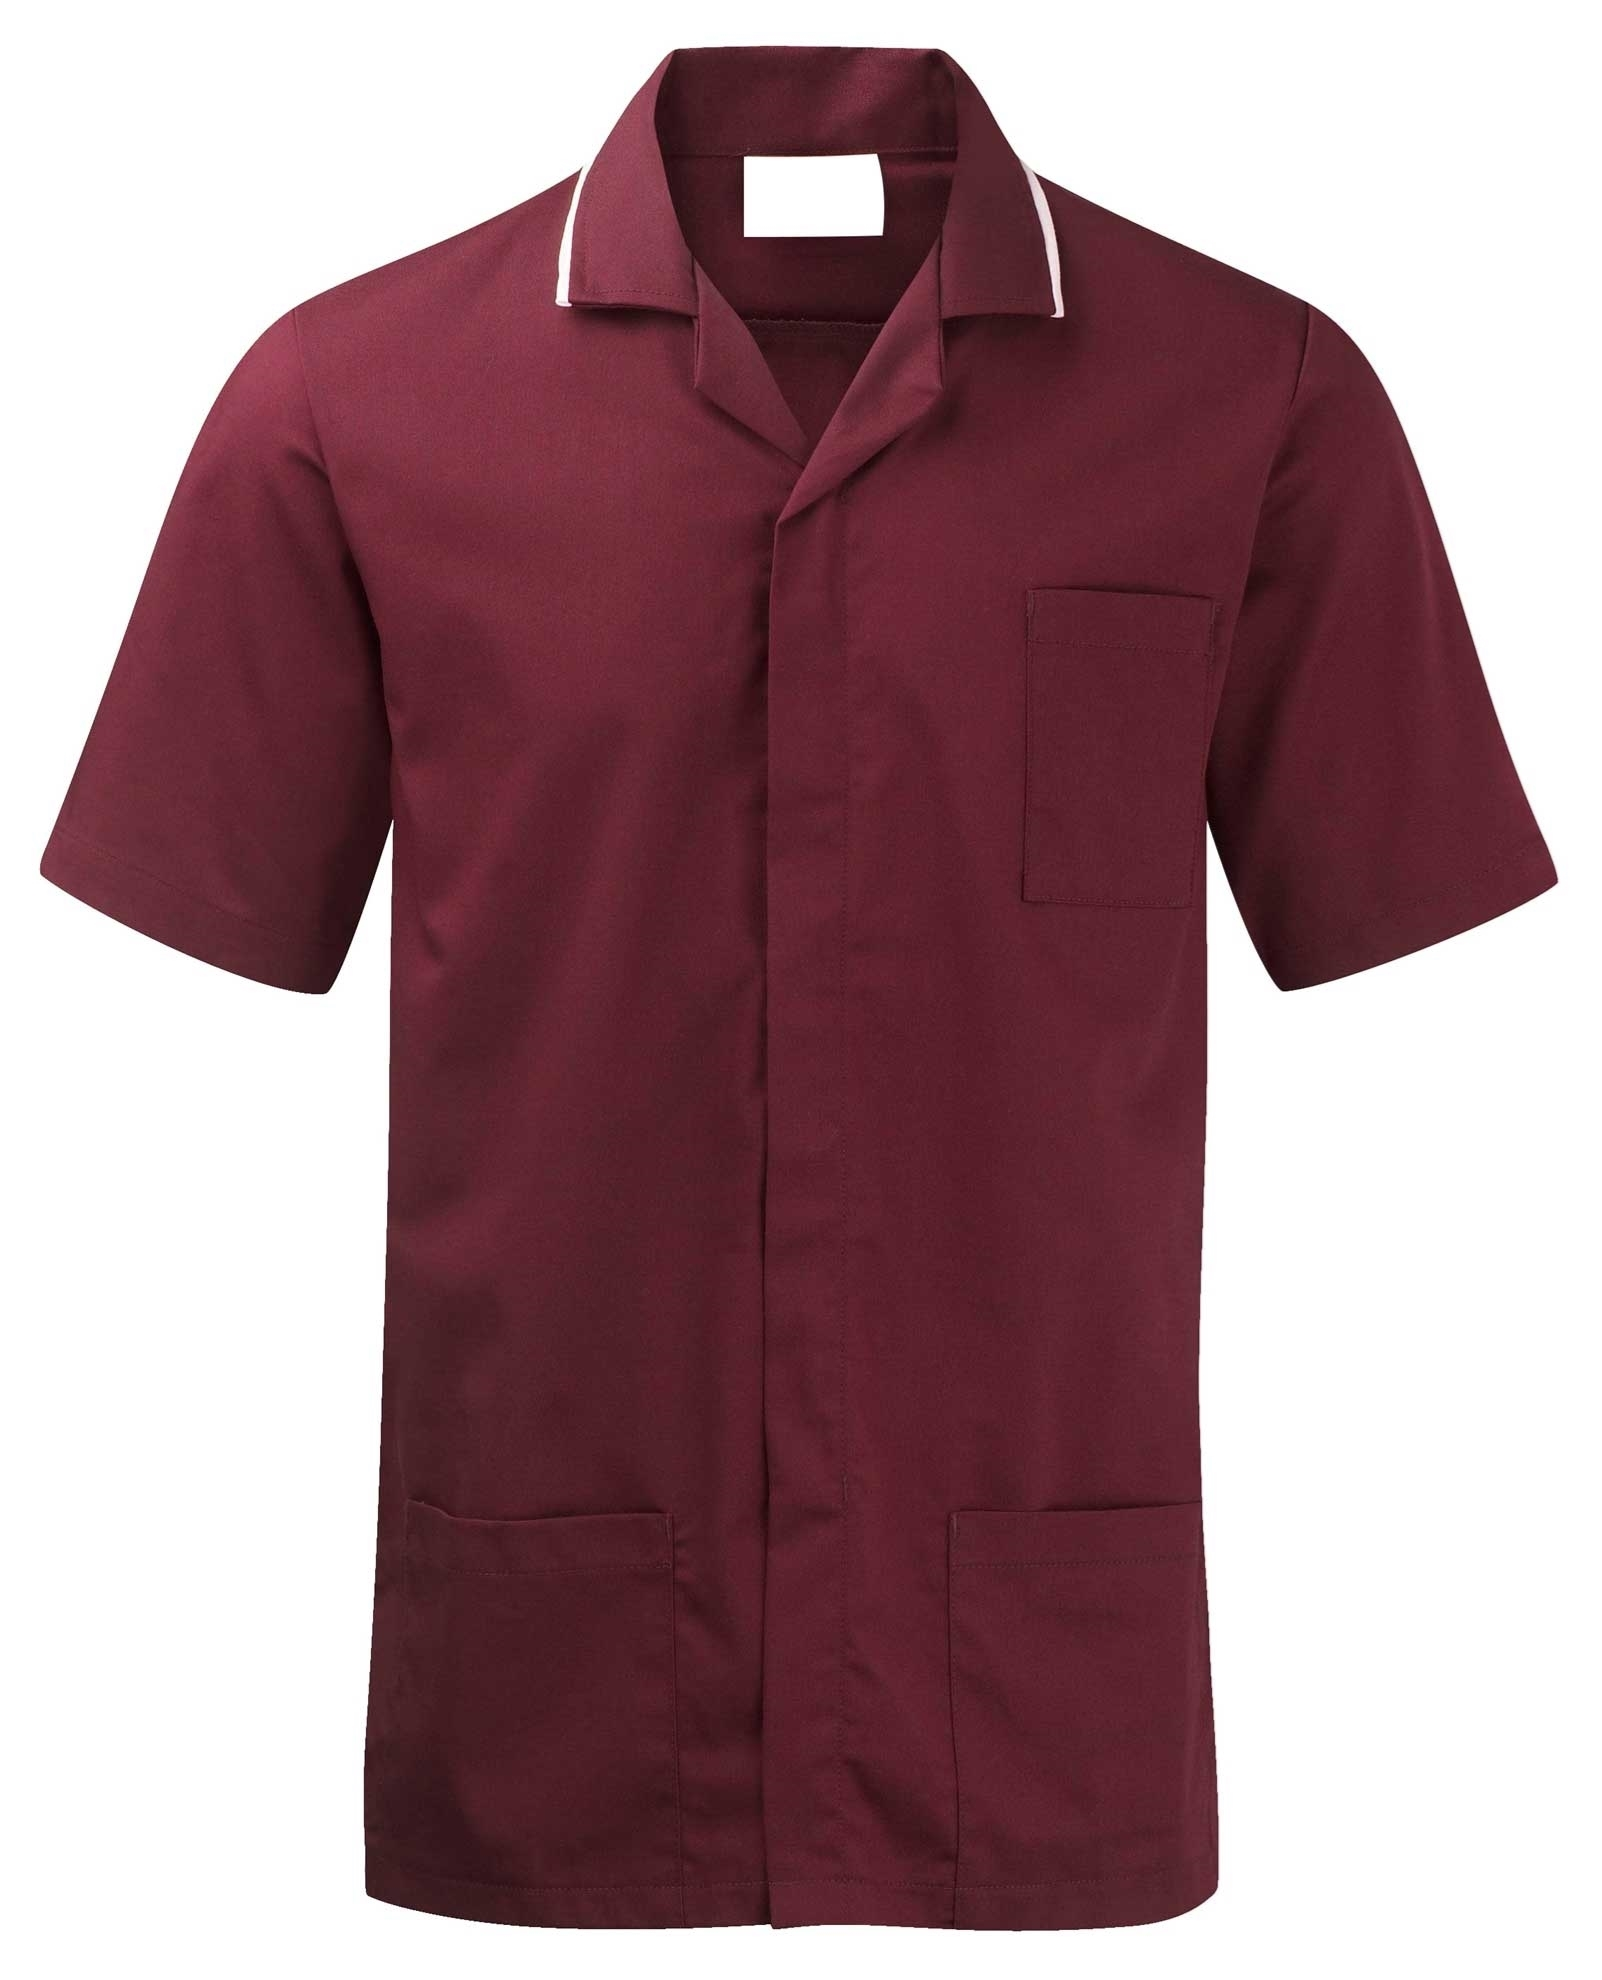 Picture of Advantage Front Fastening Tunic - Smokeberry/White